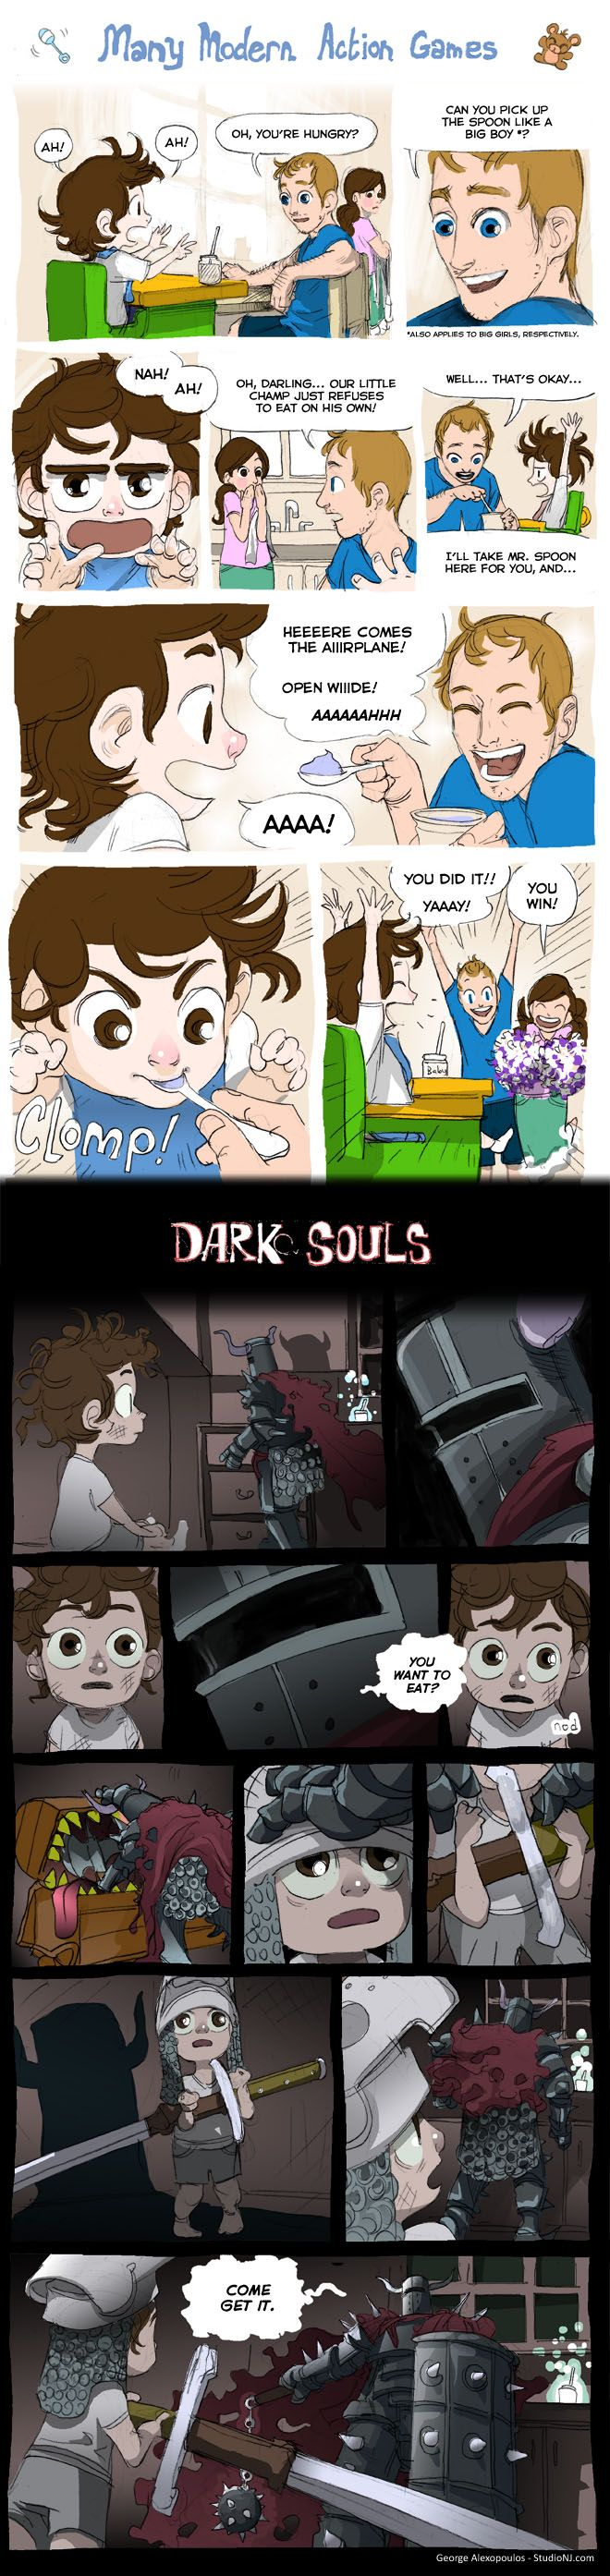 Comic on Dark Souls Gaming